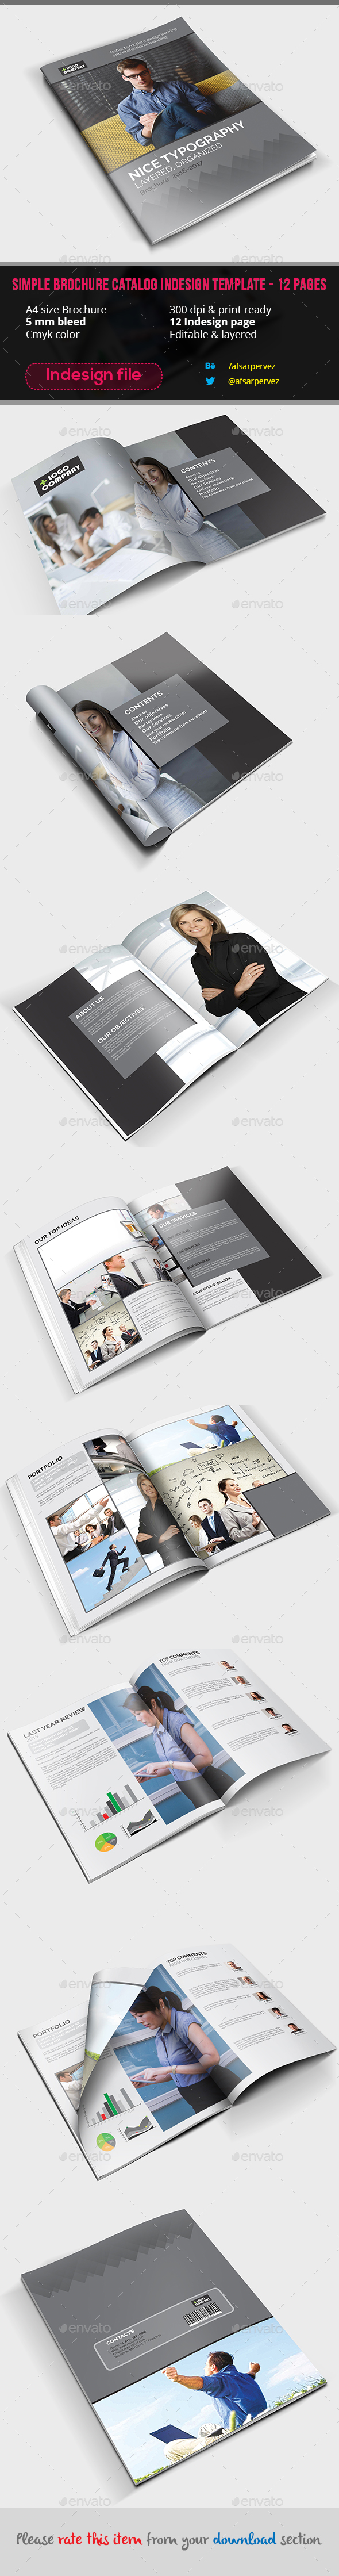 Simple Brochure Catalog Indesign Template – 12 Pages - Corporate Brochures